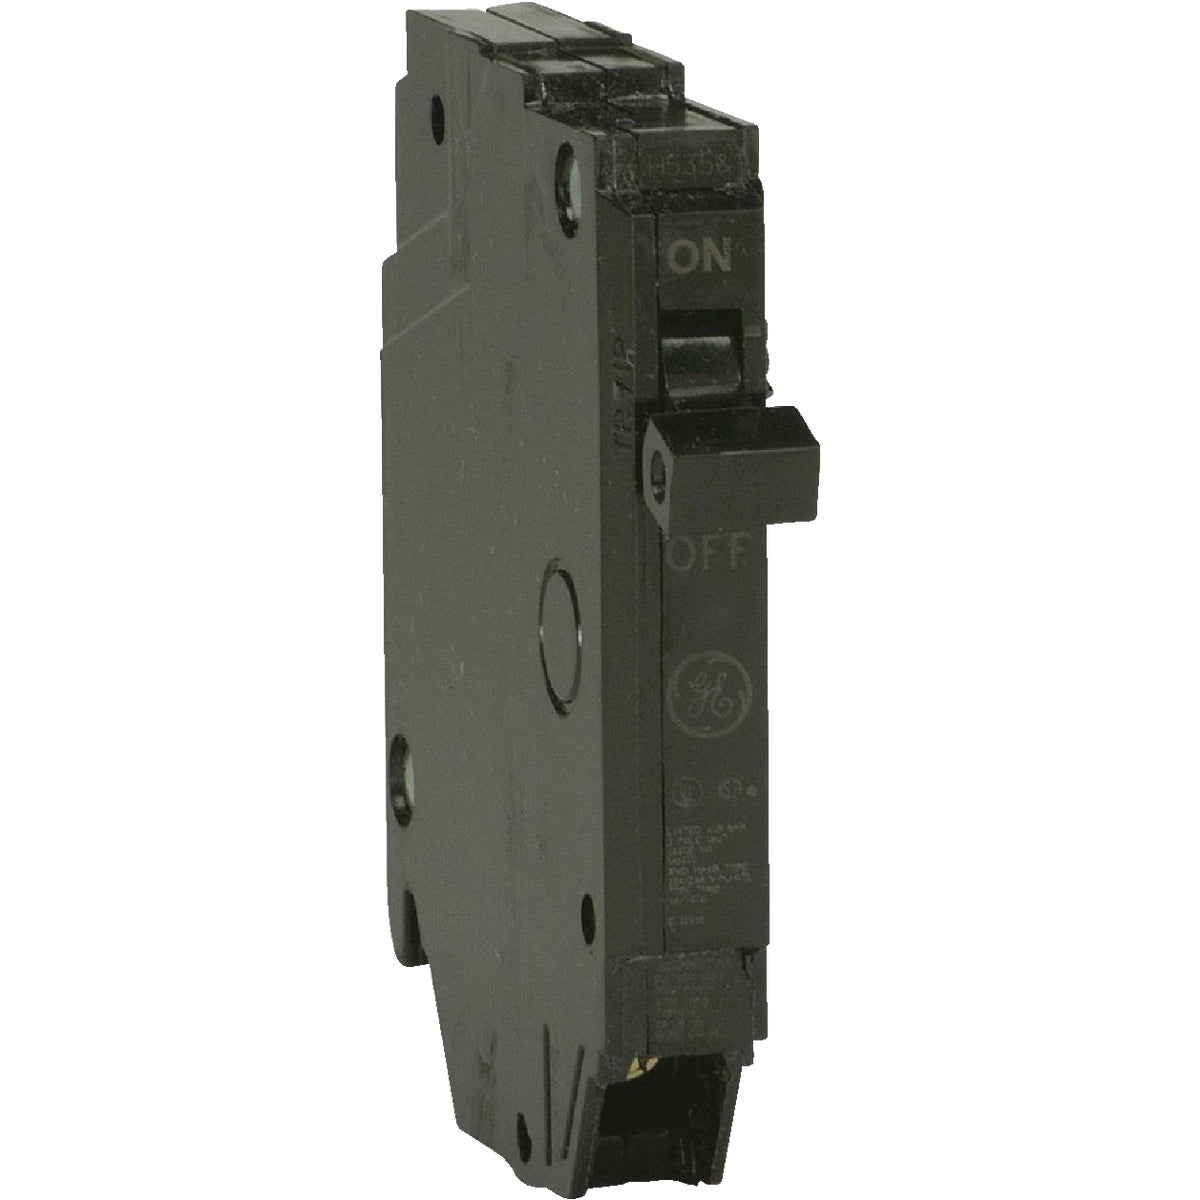 15A SP CIRCUIT BREAKER - THQP115 by G E Industrial